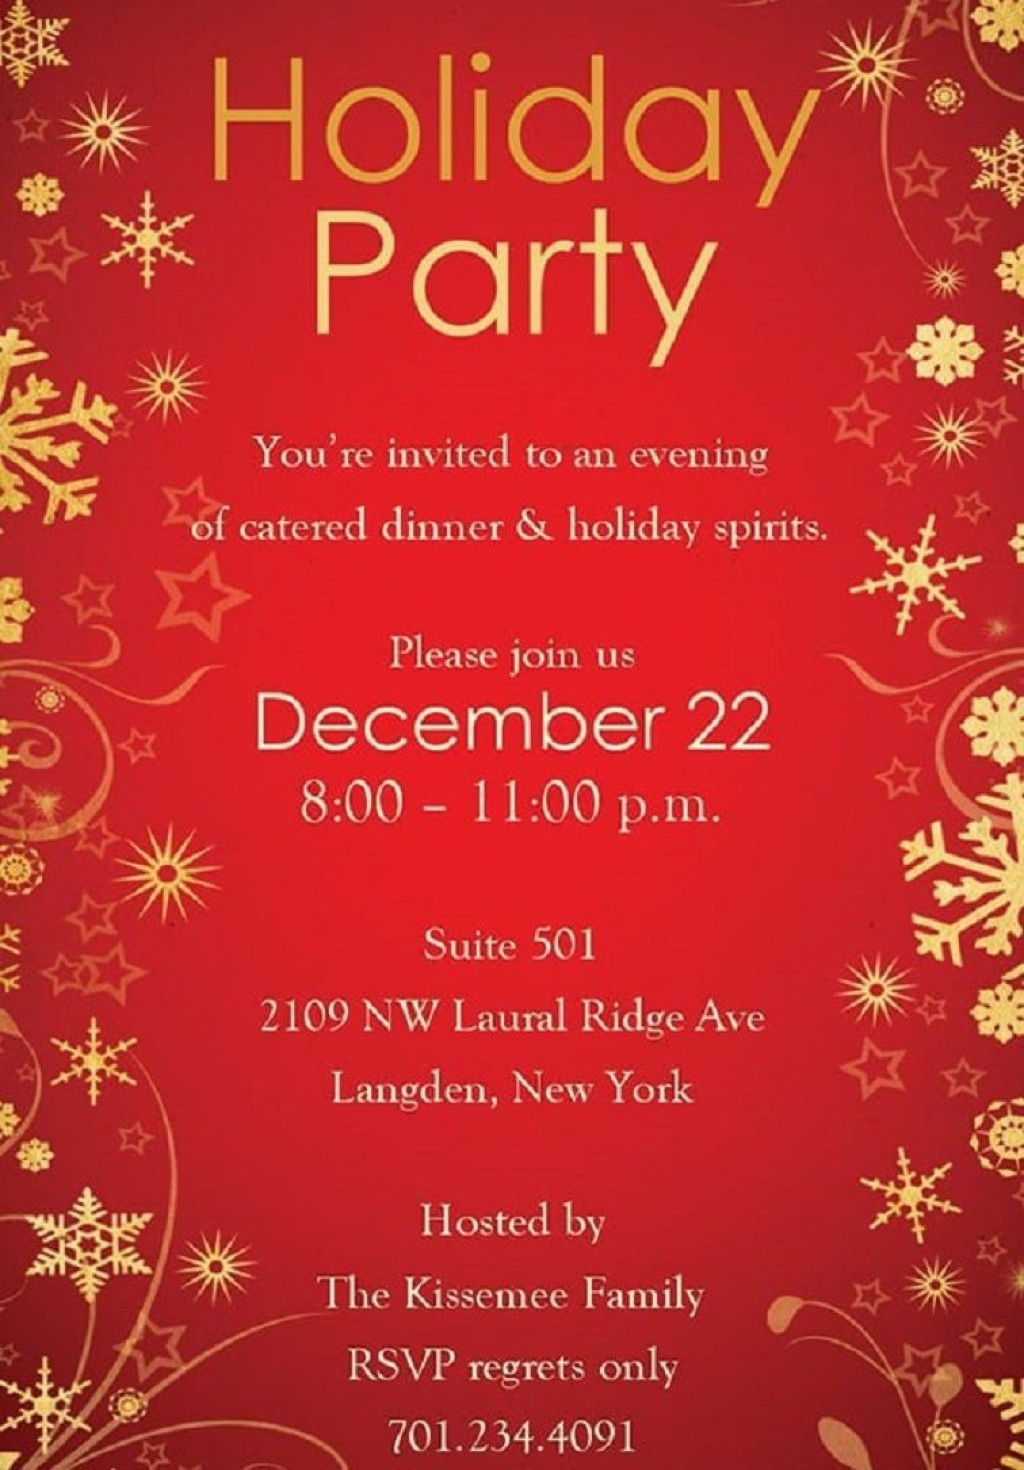 001 Unusual Christma Party Invite Template Word Image  Holiday Free Invitation Wording ExampleLarge